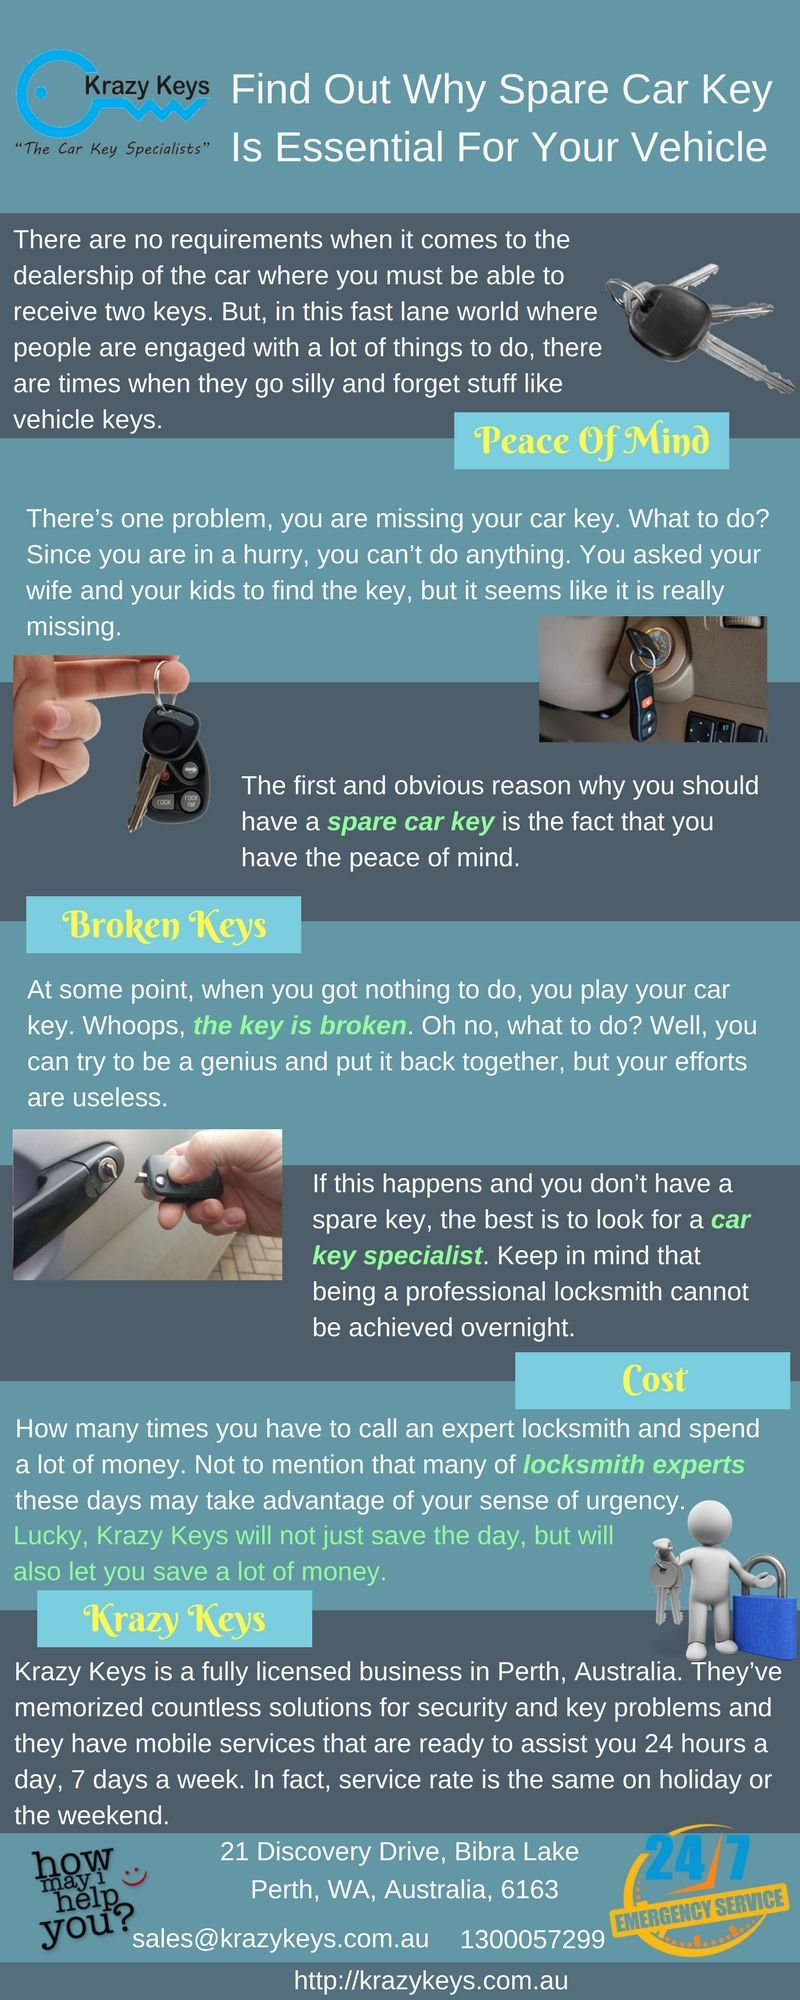 Find Out Why Spare Car Key Is Essential For Your Vehicle